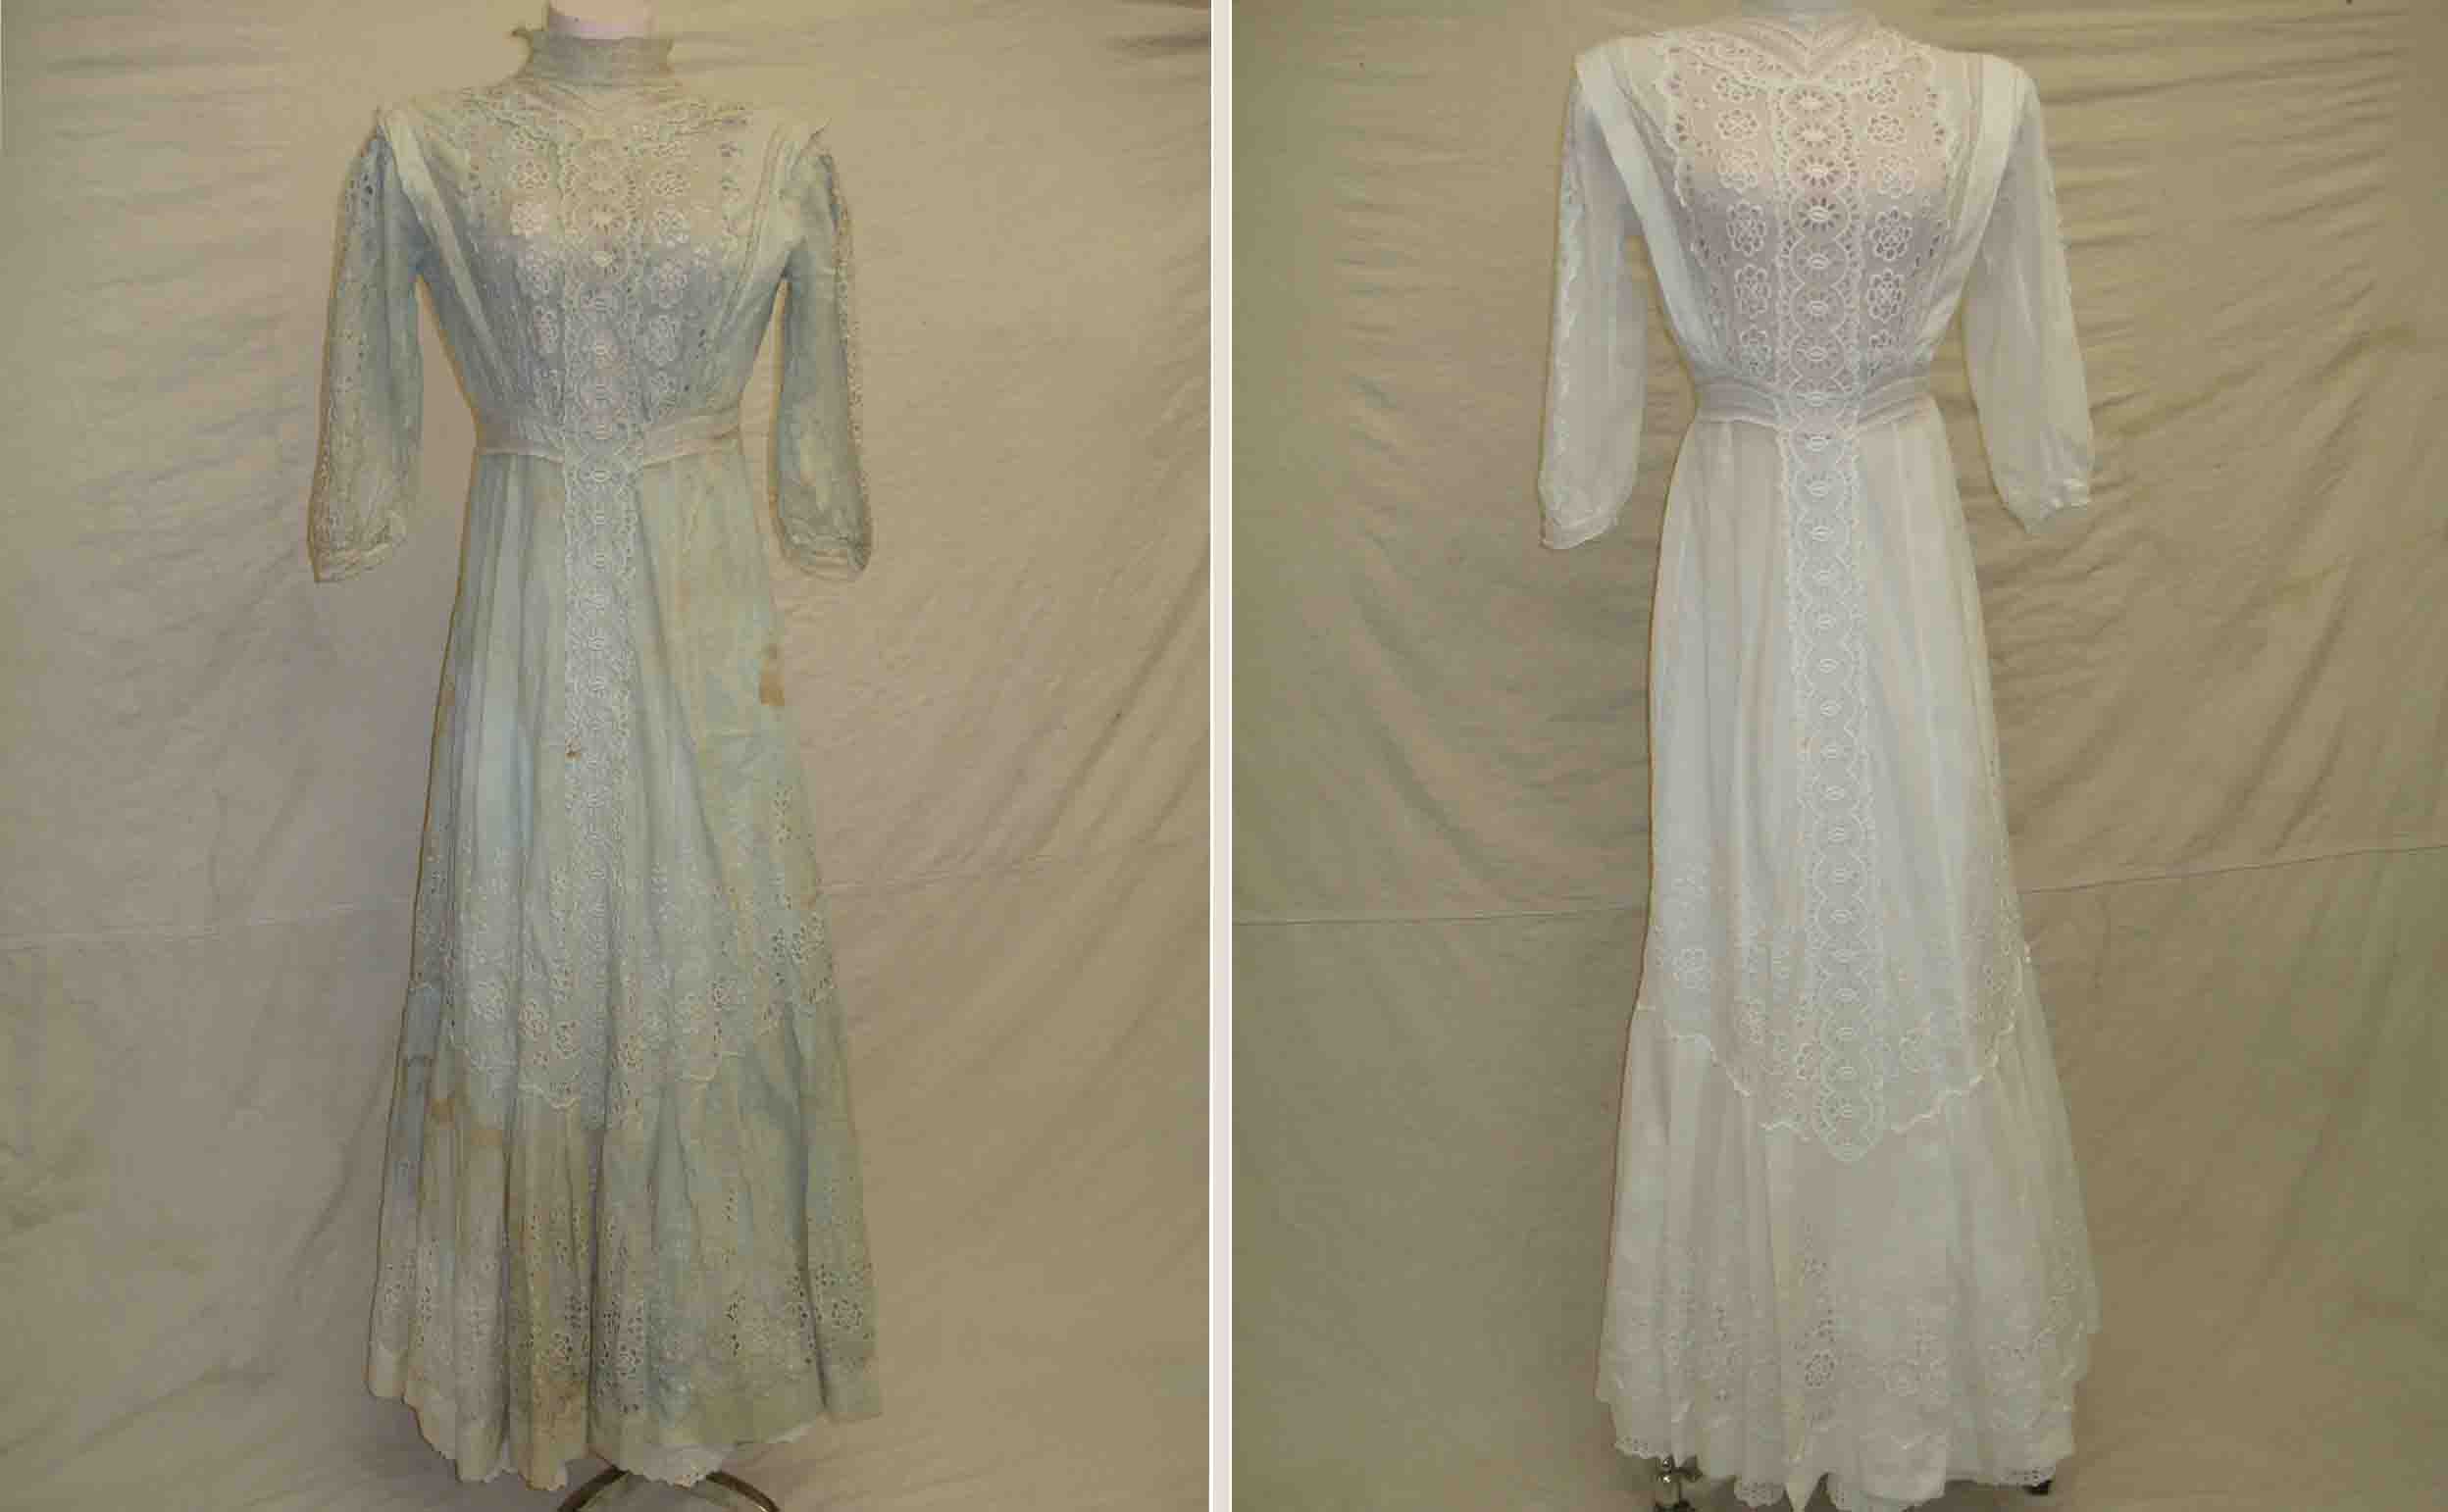 Photo Gallery of Vintage Wedding Gown Restorations